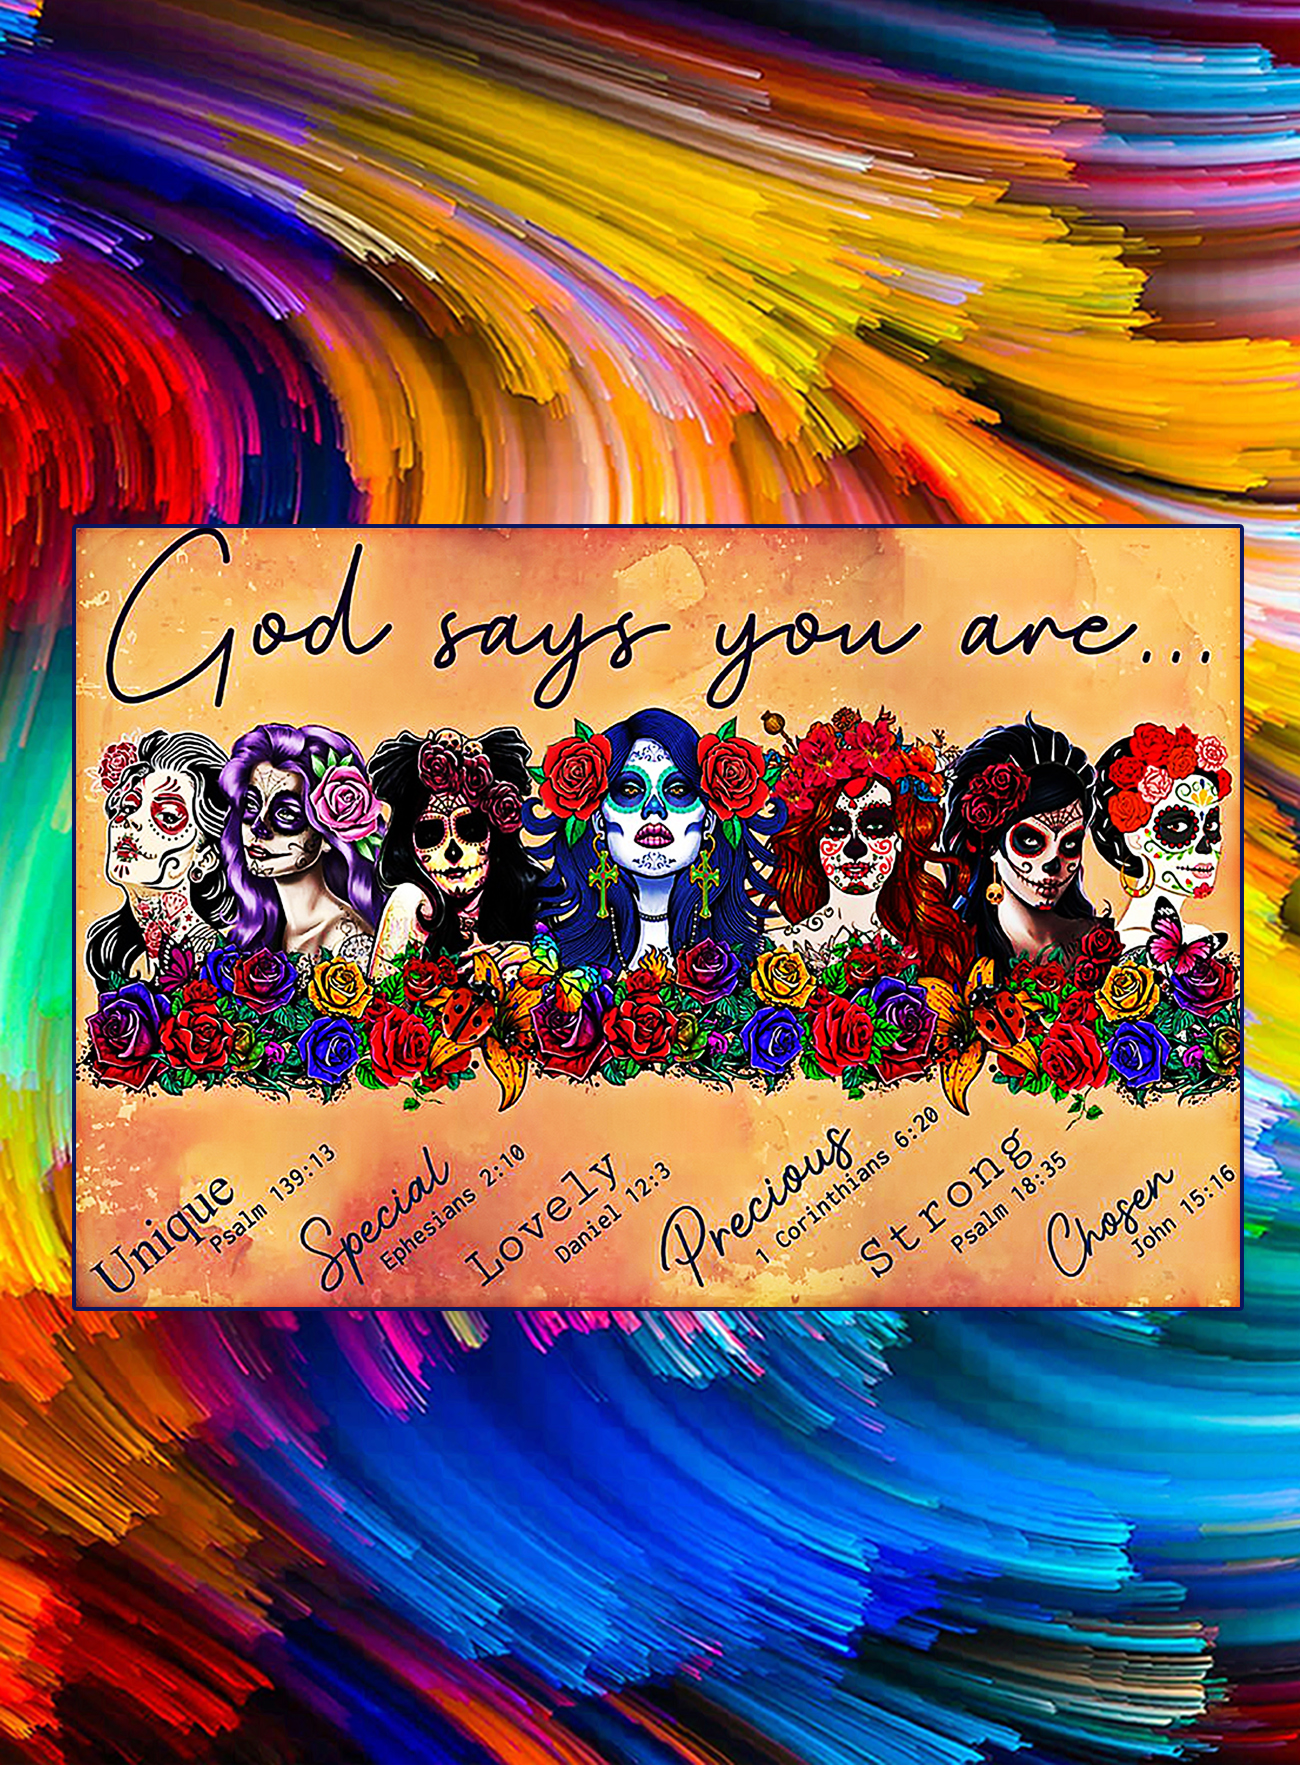 Day of the dead god say you are poster